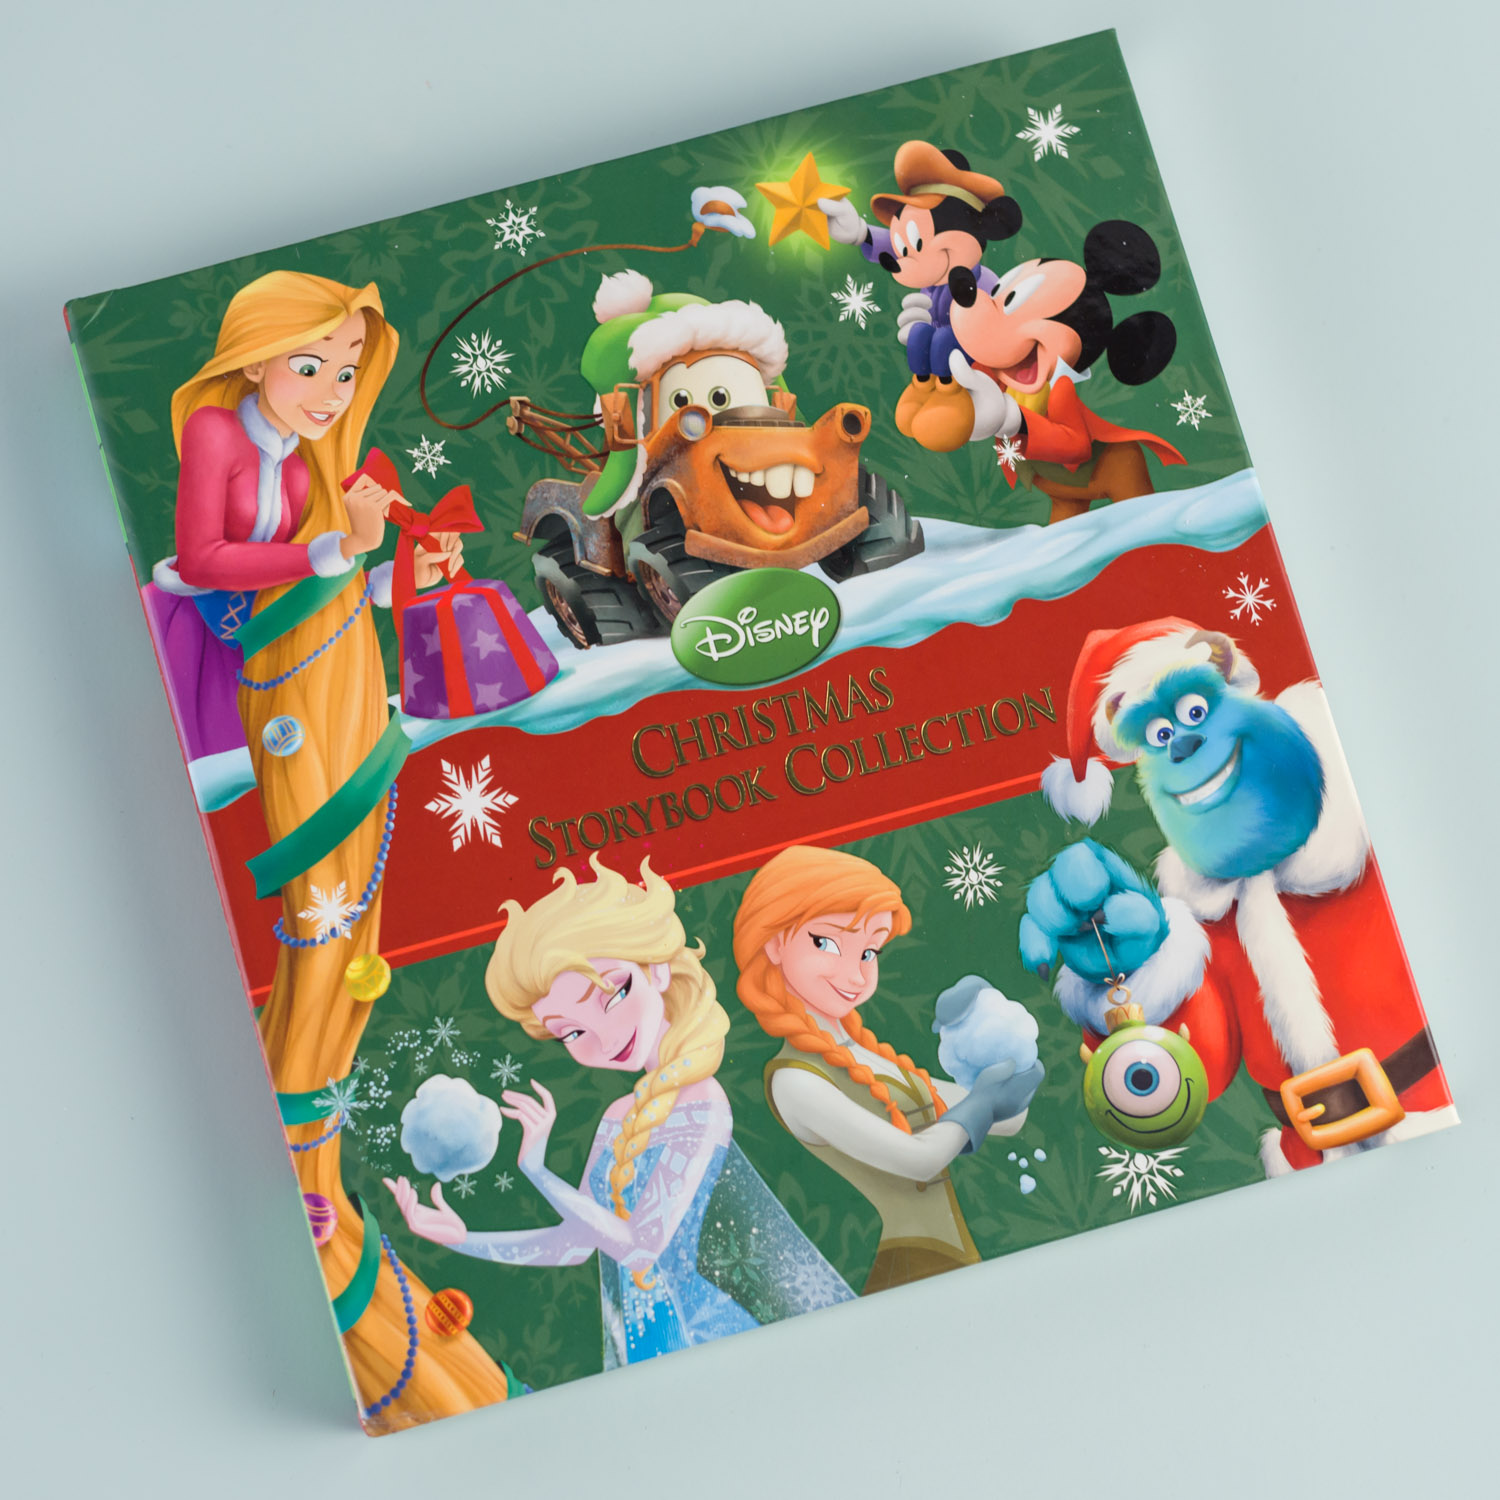 disney christmas storybook collection cracker barrel old country store - Disney Christmas Storybook Collection